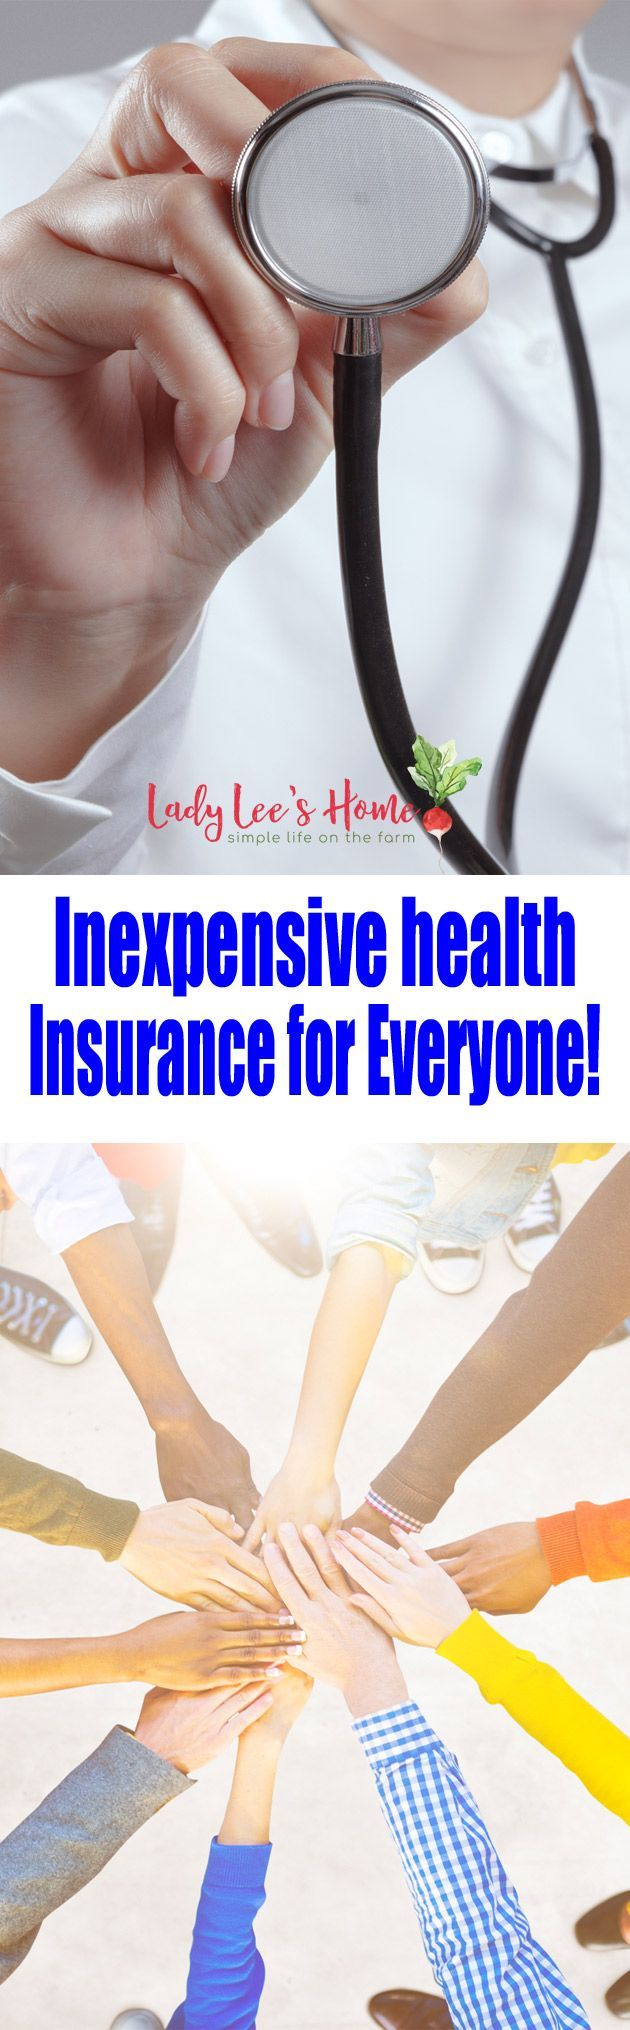 Are you tired of paying so much of your hard-earned money to health insurance companies for a coverage that doesn't make any sense? Here is an inexpensive health insurance option for everyone!  #LadyLeesHome #healthinsurance #affordable #healthy #sick #healthshare